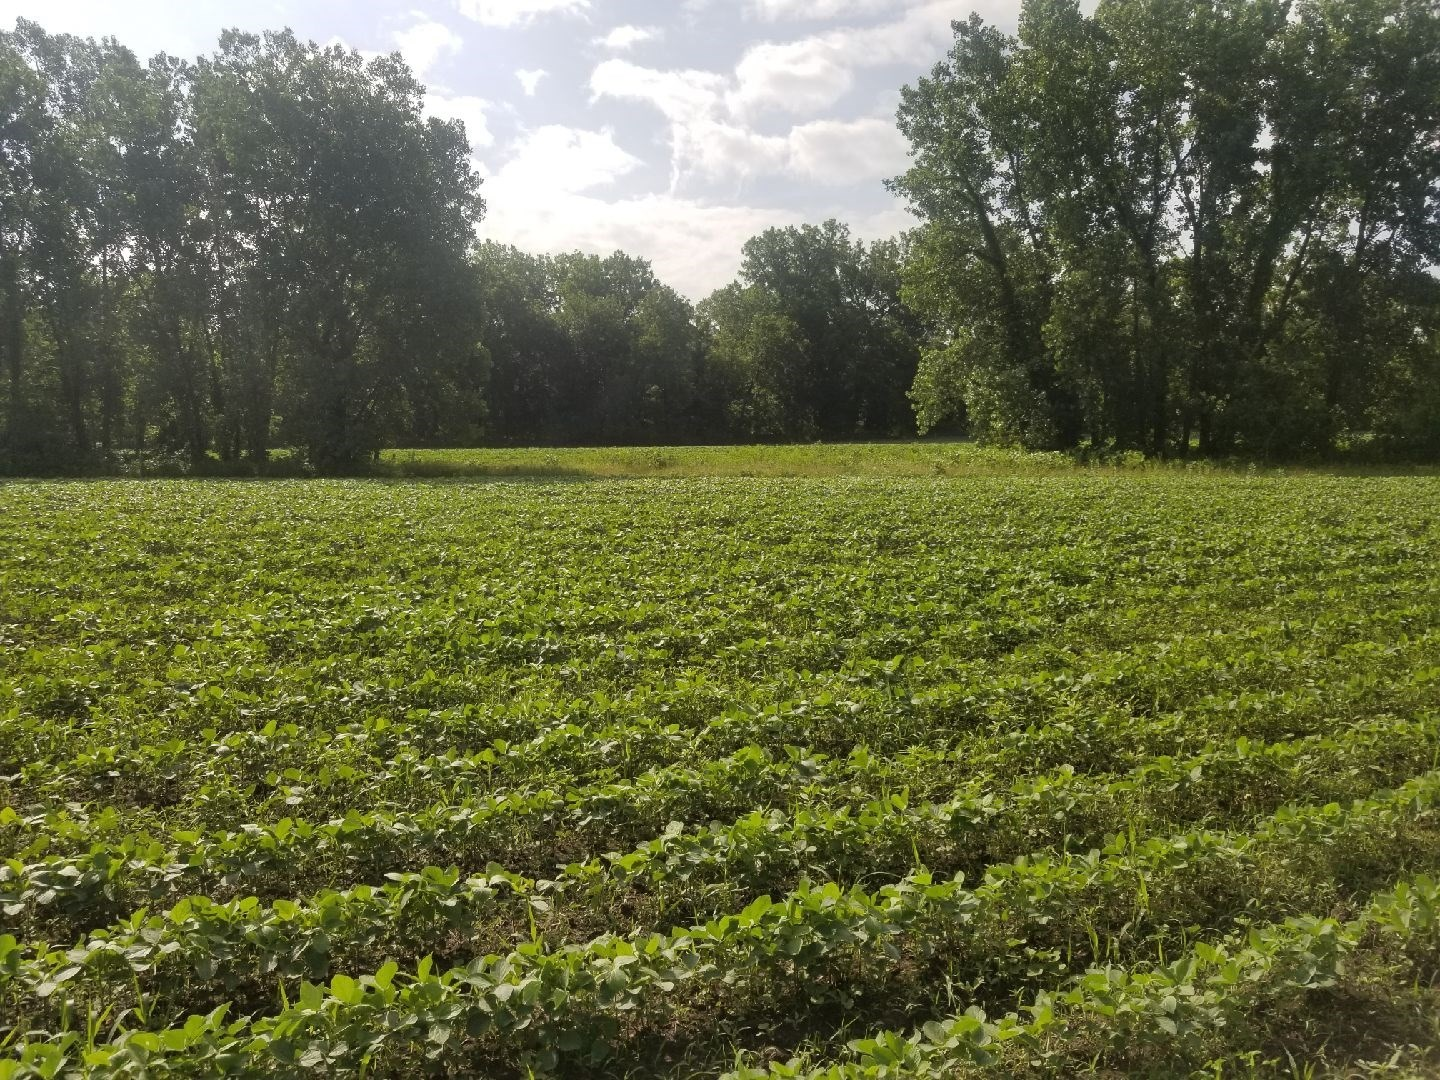 MO FARMLAND FOR SALE, INVESTMENT POTENTIAL, HUNTING, INCOME